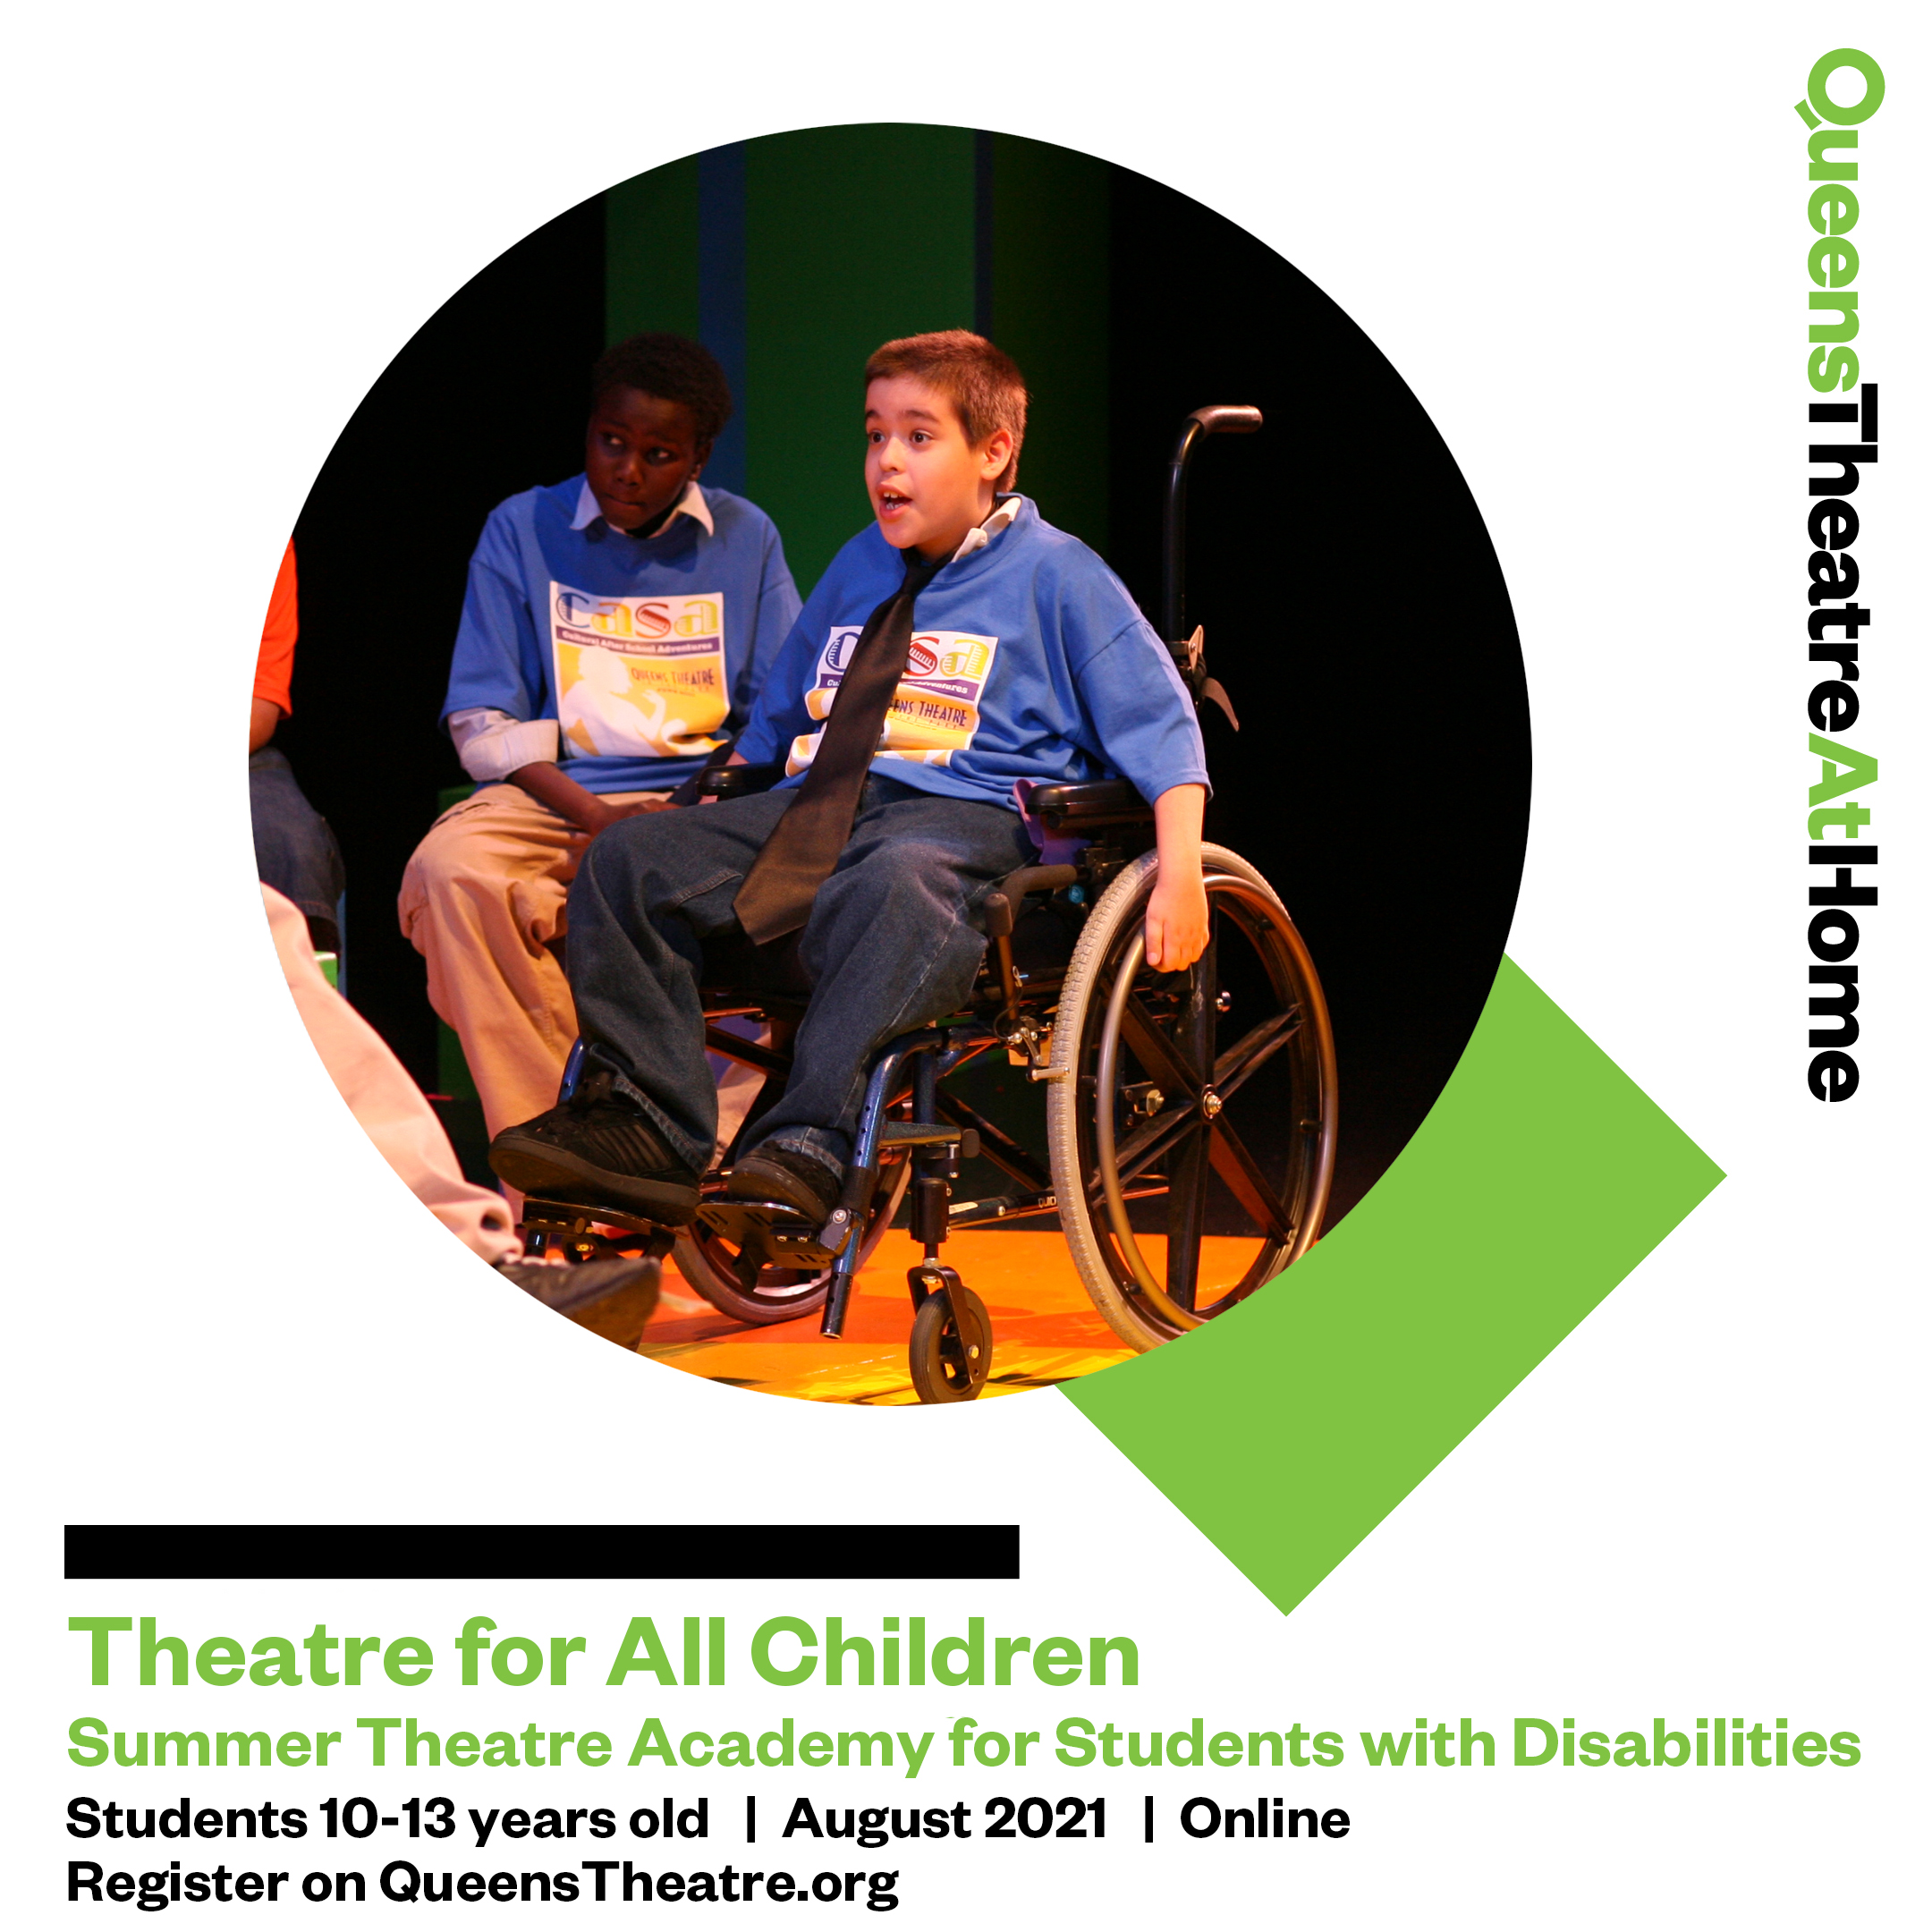 Theatre for All Children - Summer Theatre Online Academy for Students with Disabilities 2021 at Queens Theatre Online